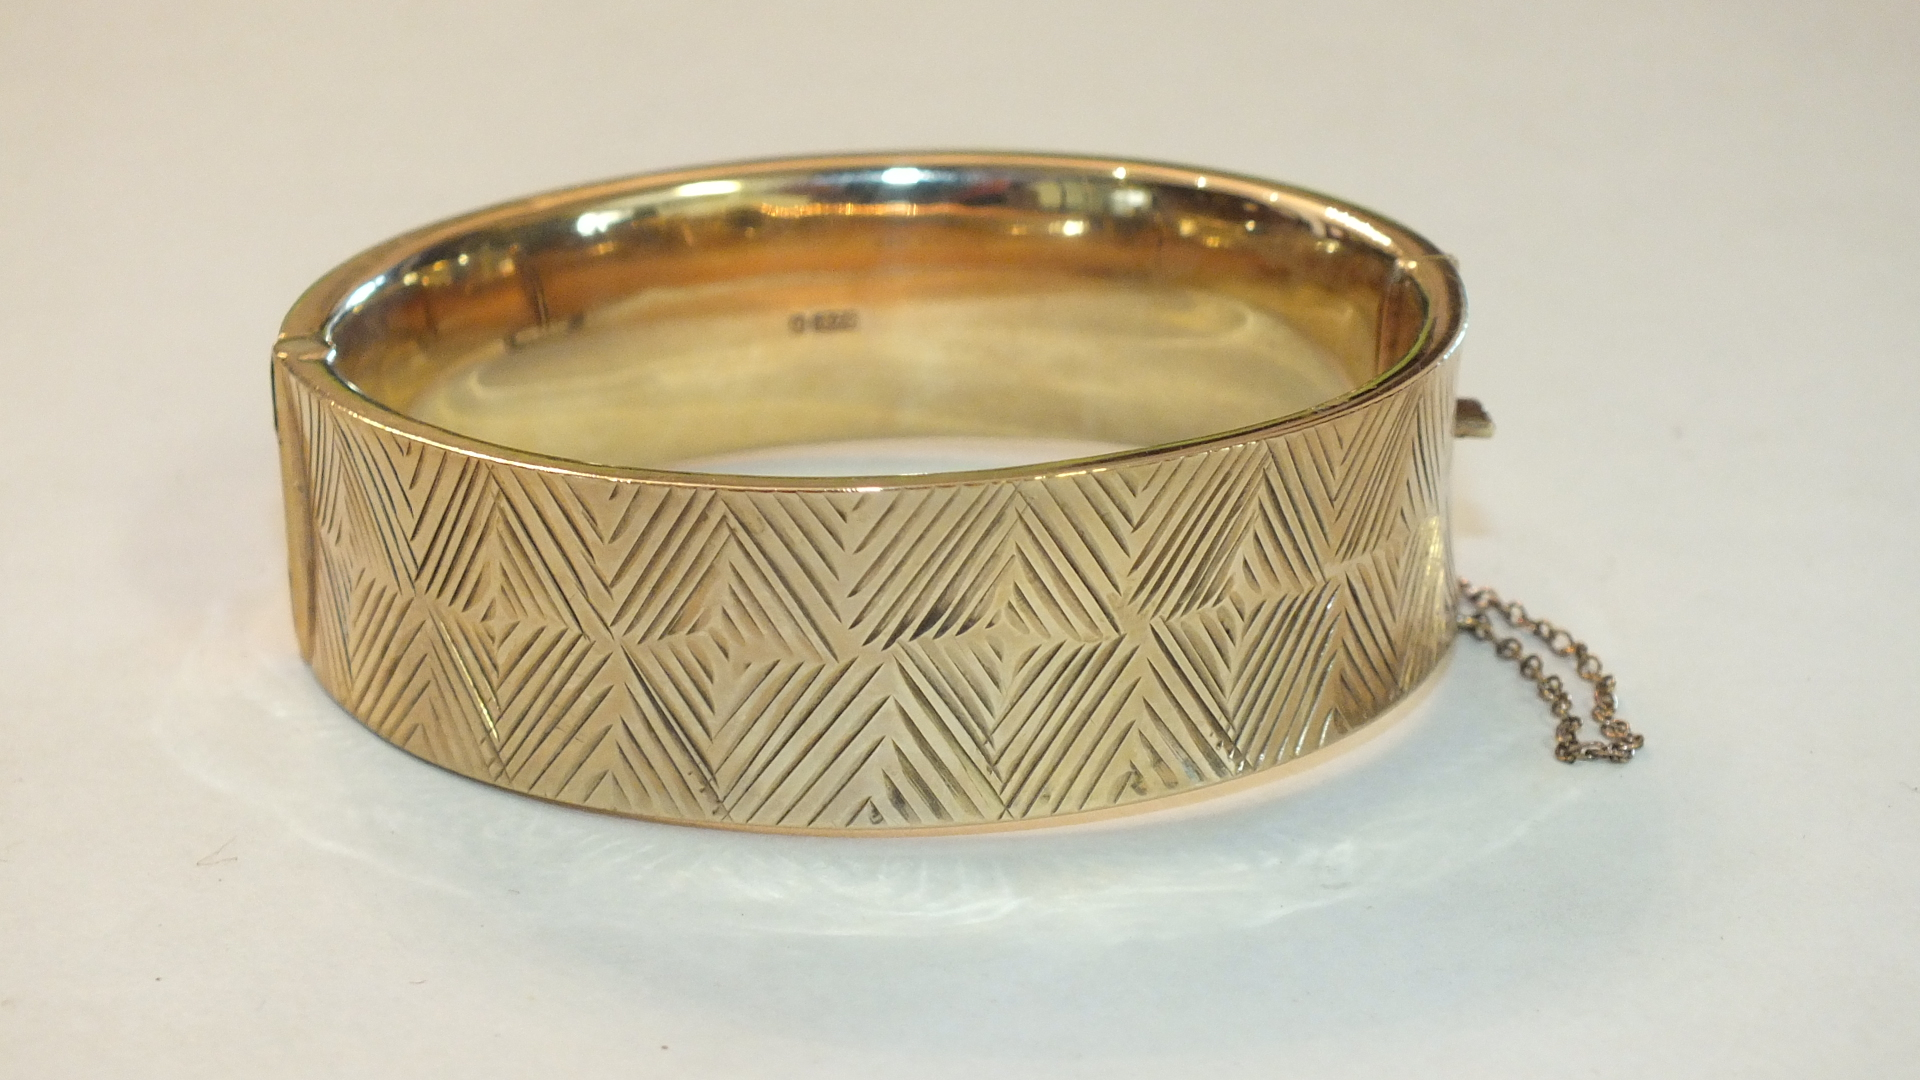 A 9ct gold hinged bangle with engraved geometric decoration, 27g.